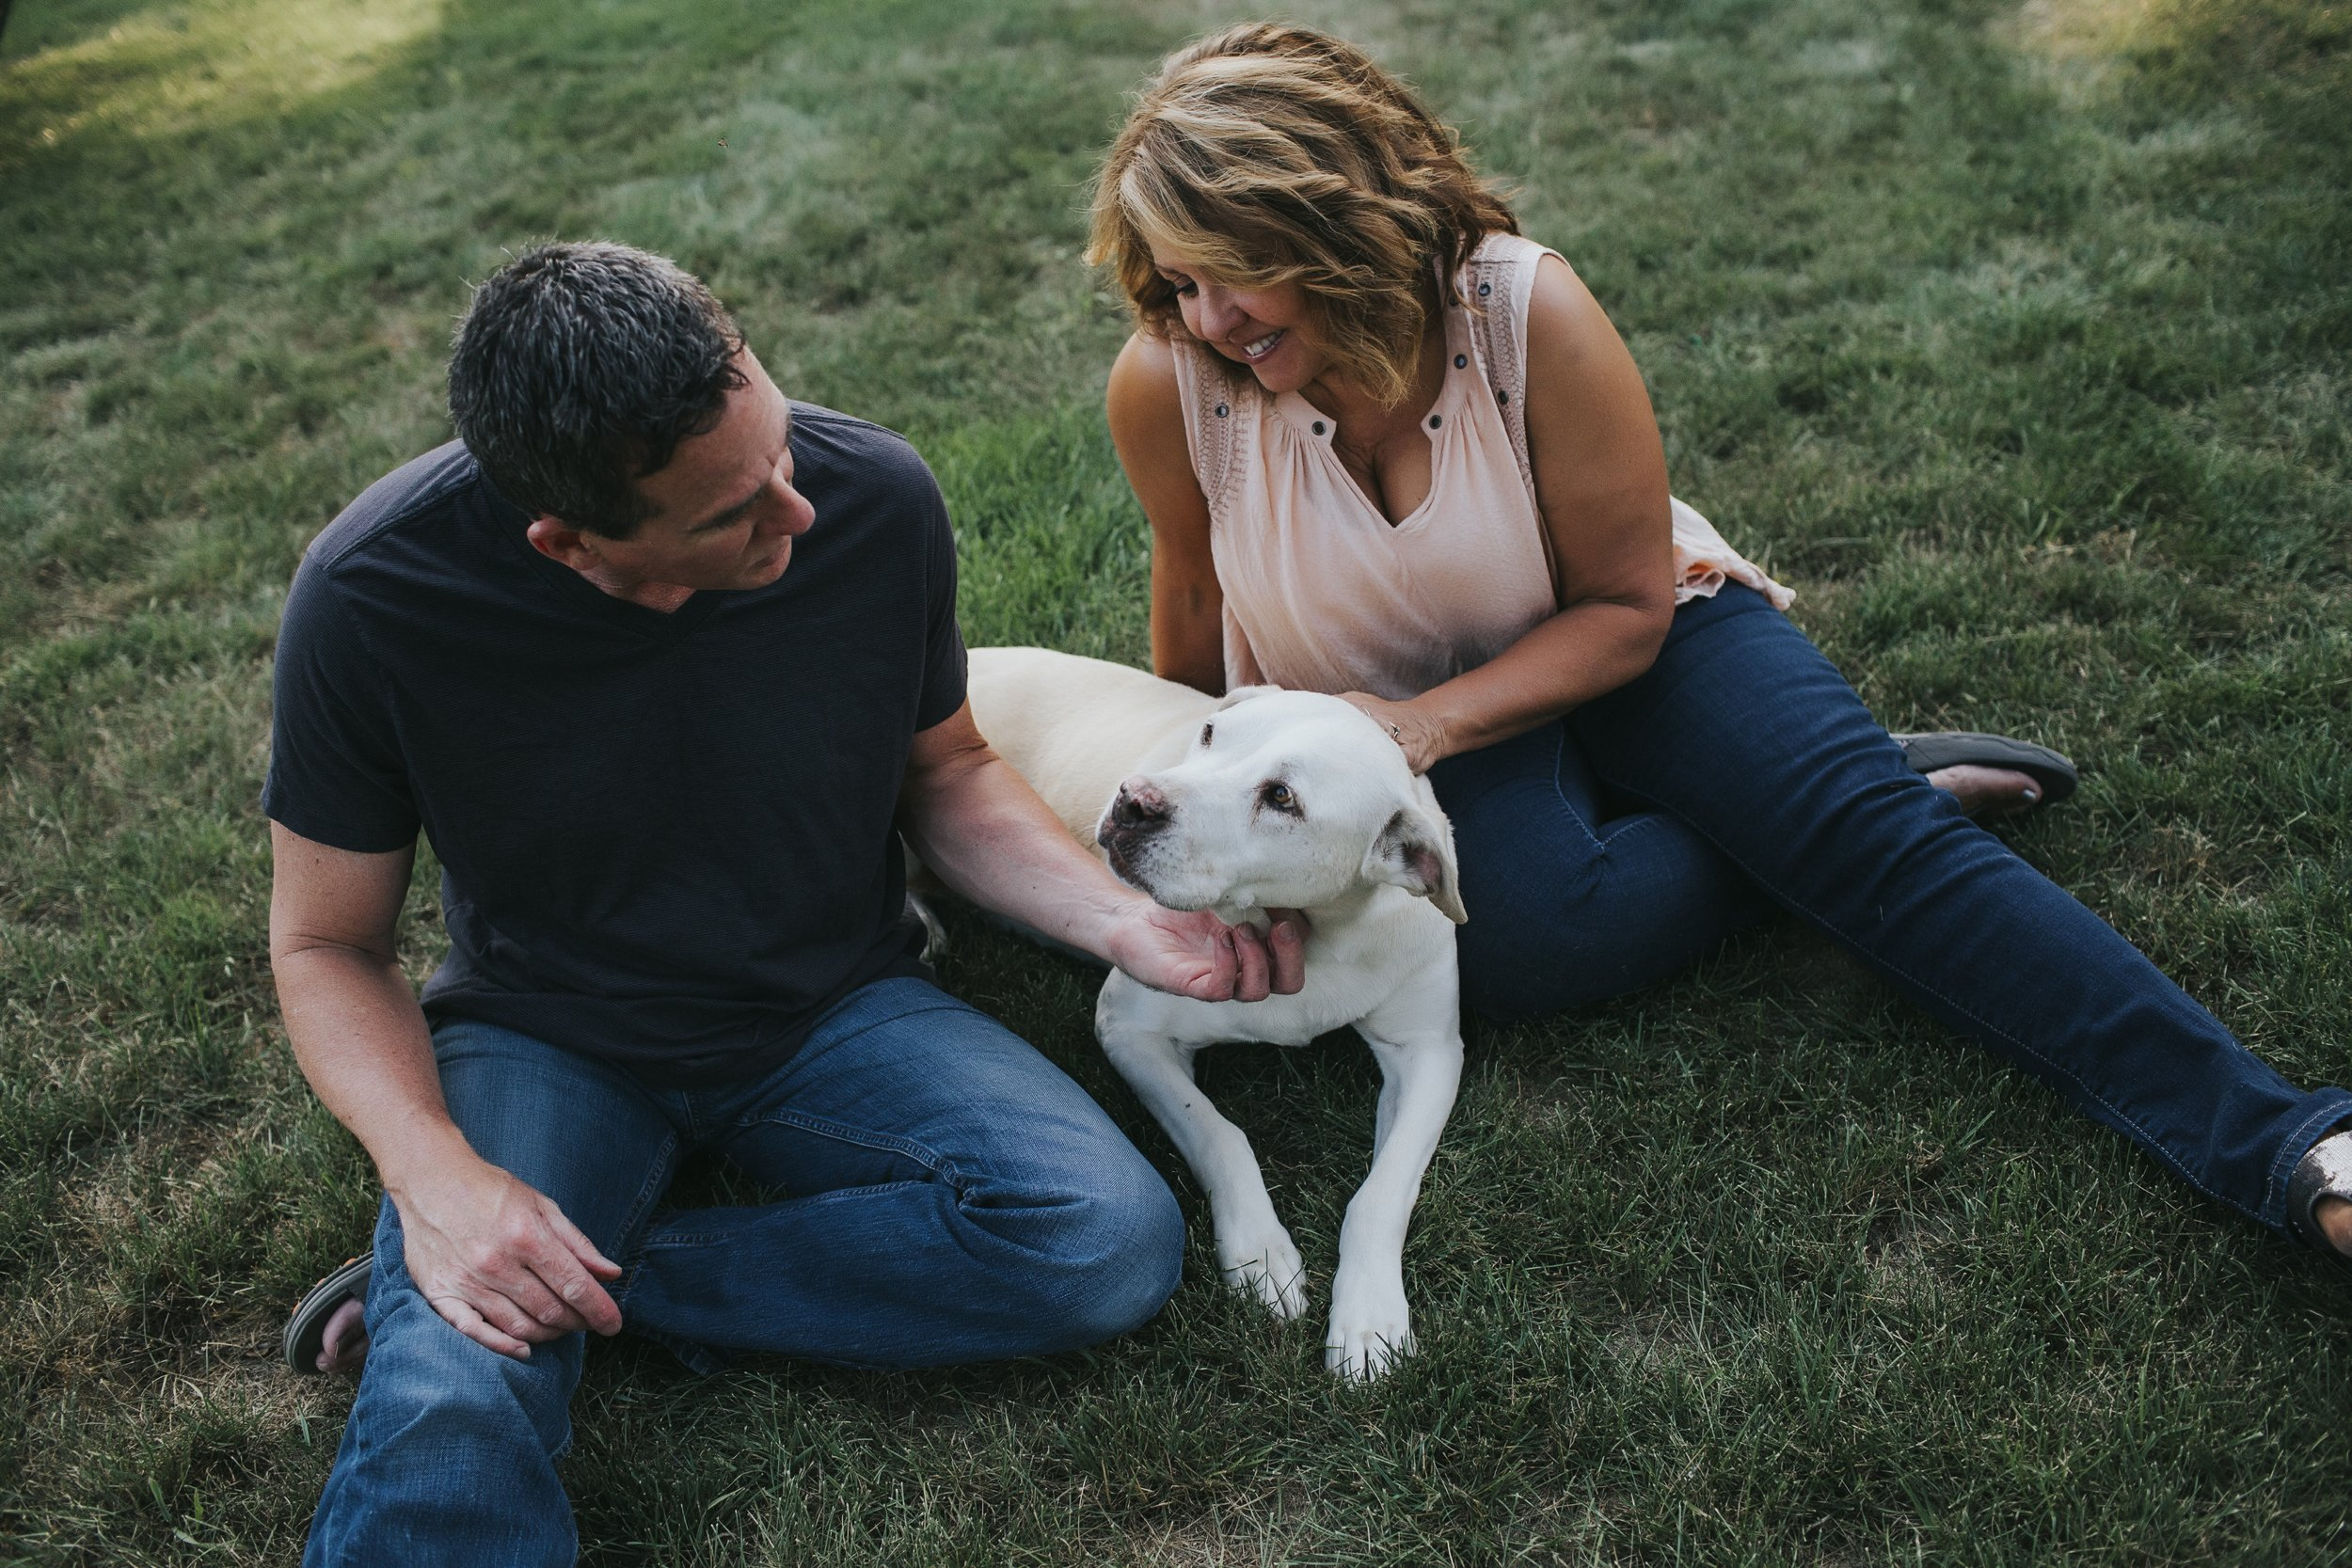 mom and dad with dog on grass